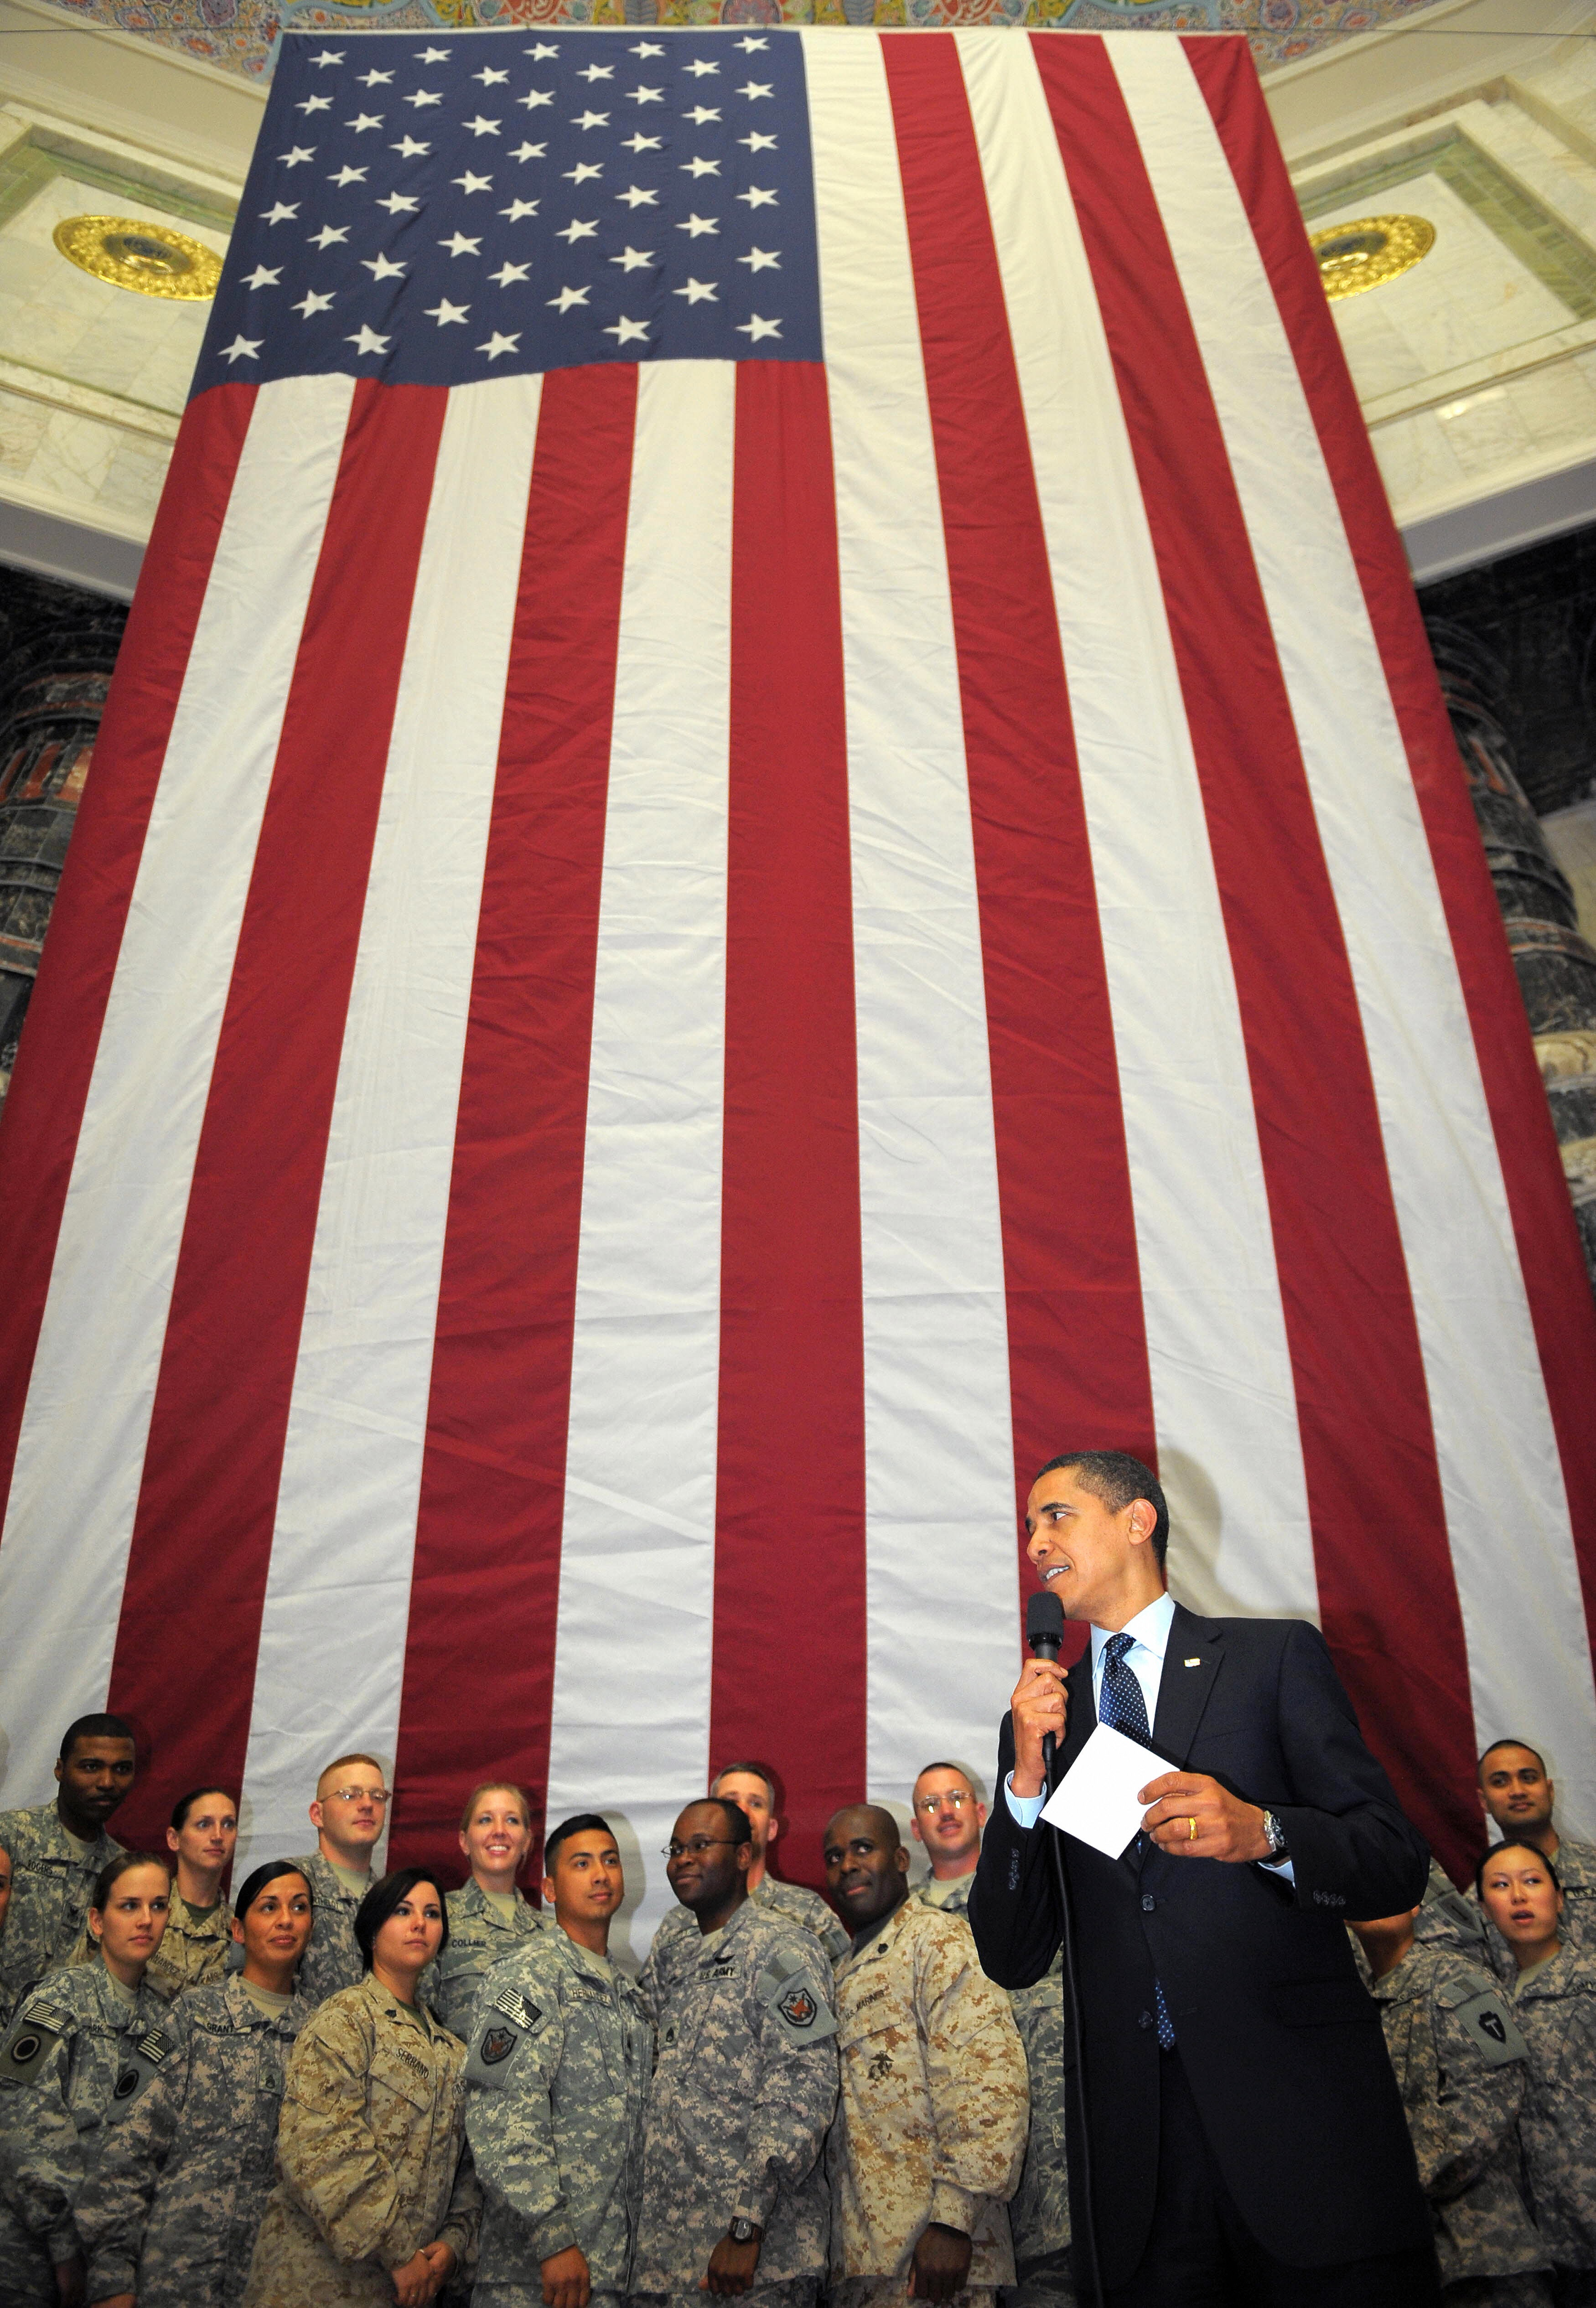 MANDEL NGAN/AFP/Getty Images. US President Barack Obama speaks during a visit to Camp Victory in Baghdad, Iraq.